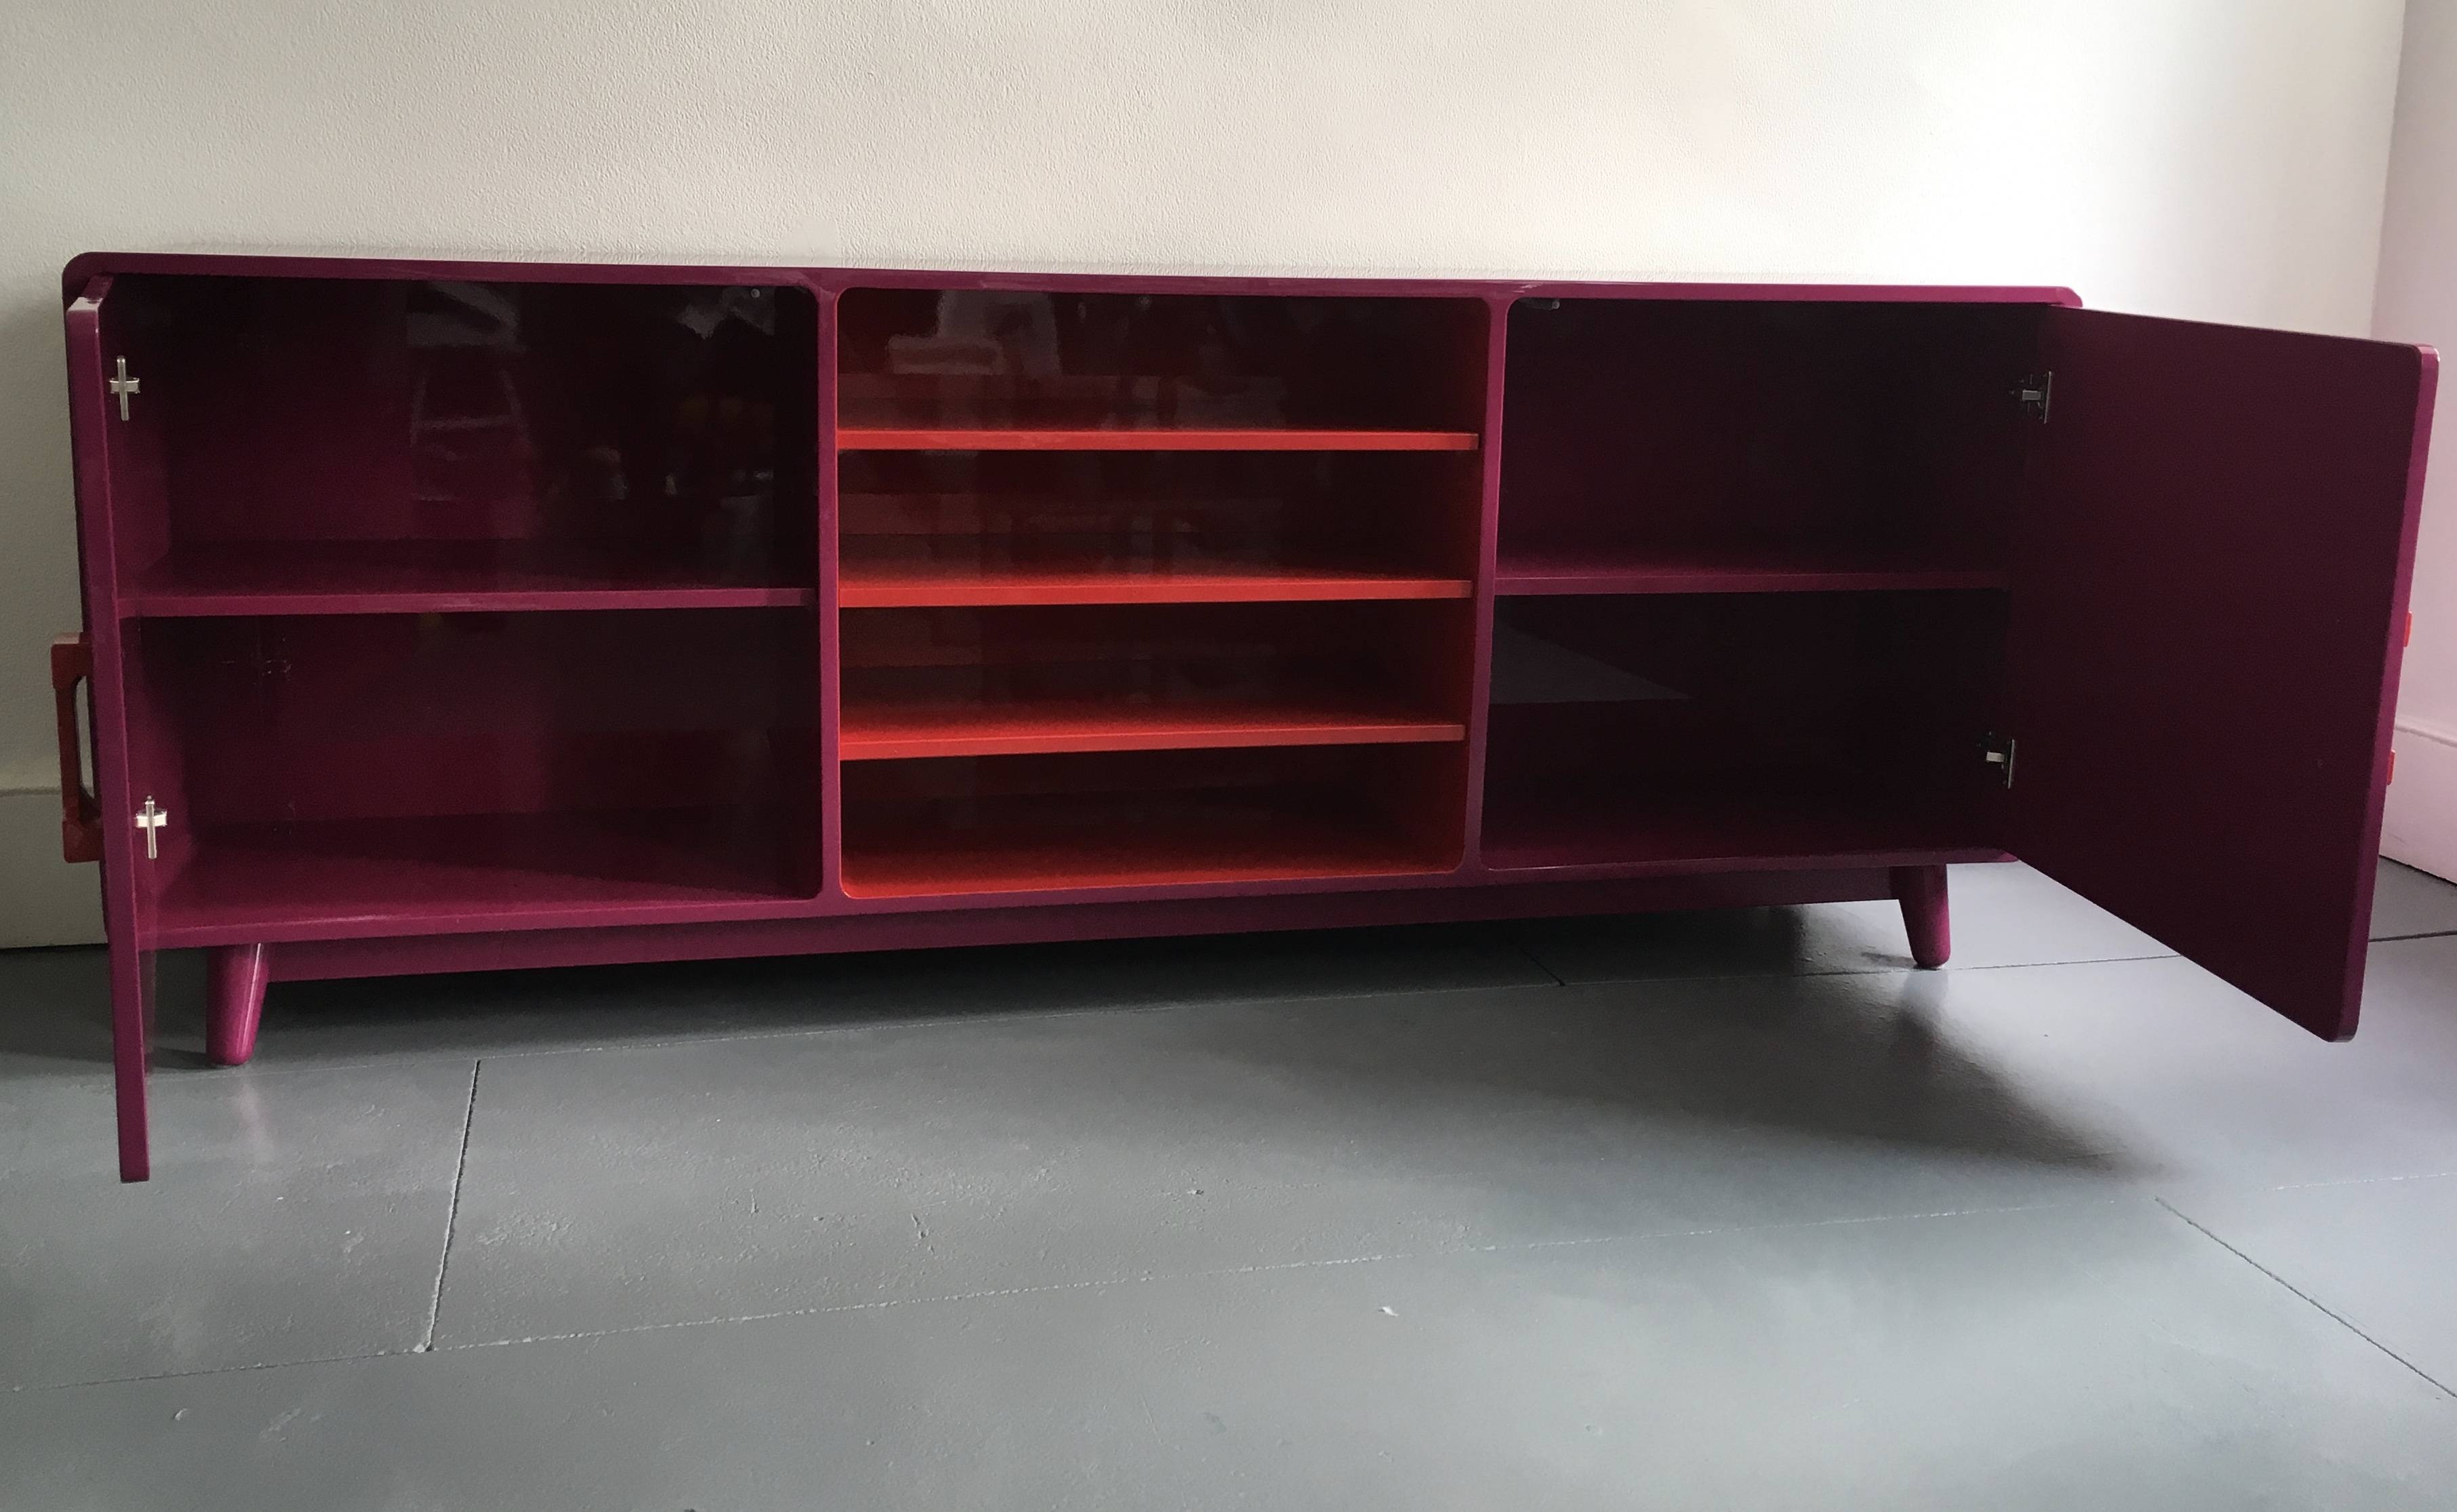 Inspiration about 60's Inspired High Gloss Lacquered Sideboard In Hot Pink And Red Intended For Red High Gloss Sideboard (#14 of 20)